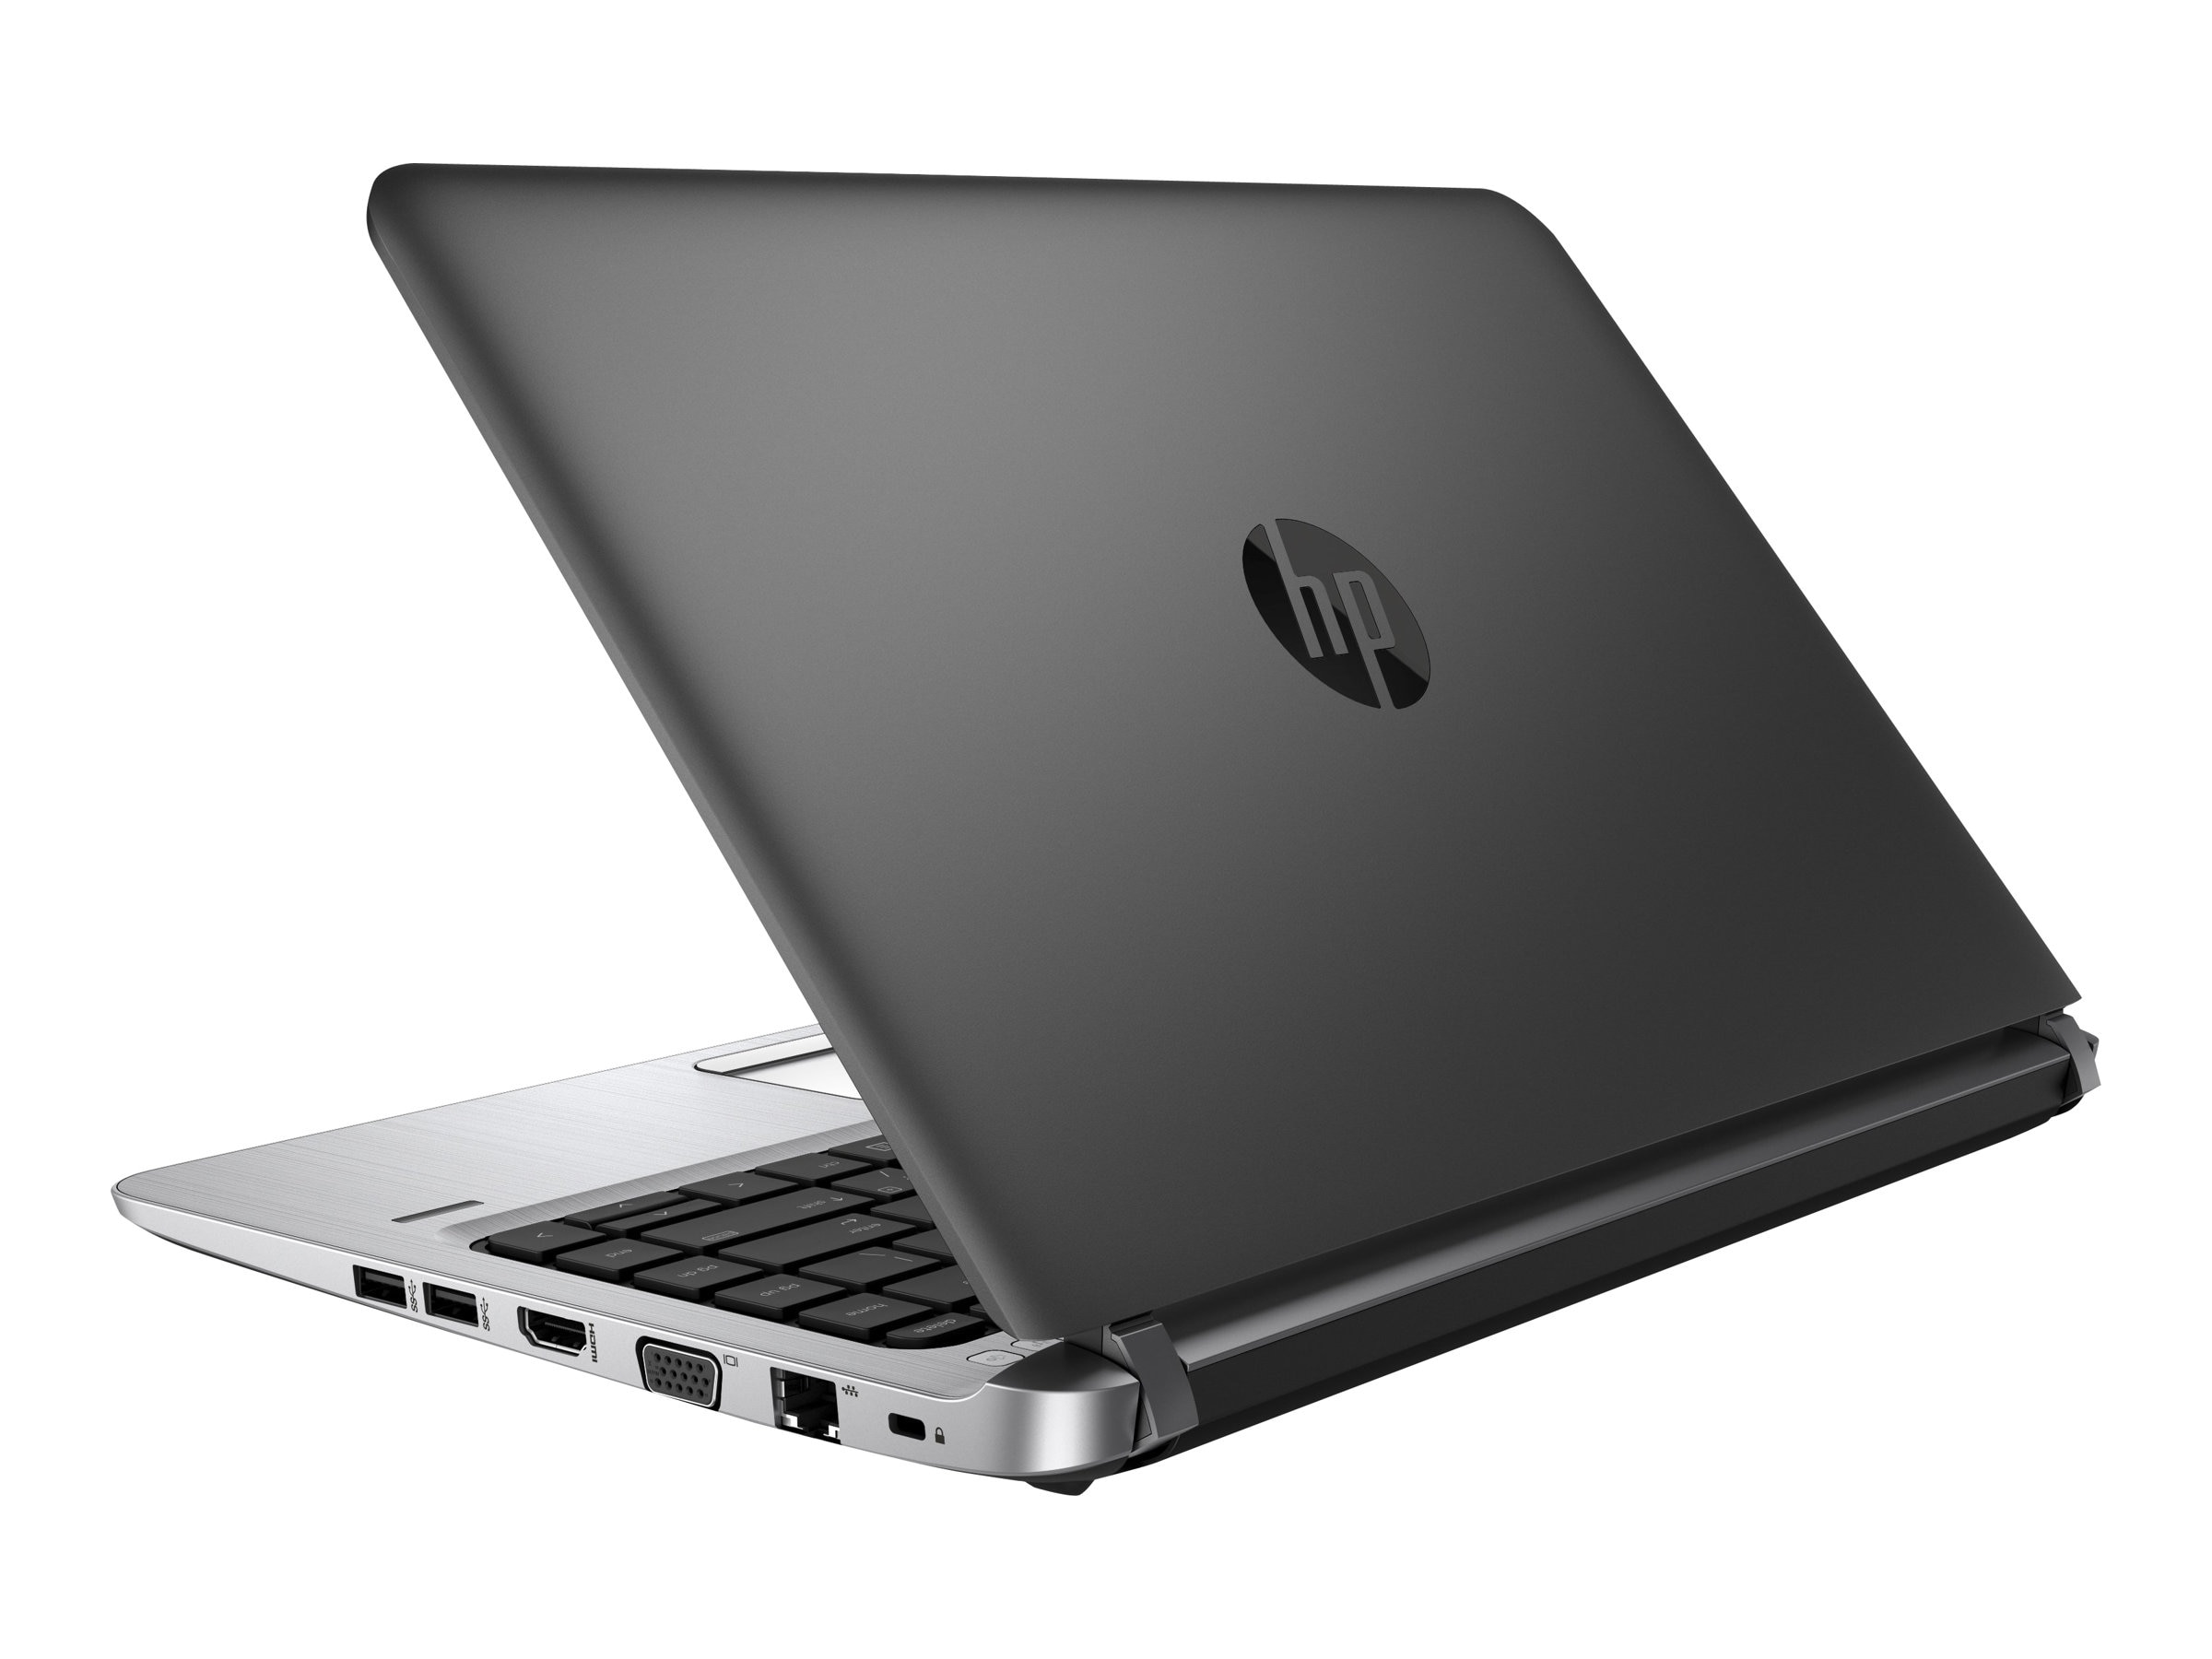 HP EliteBook 430 G3 2.5GHz Core i7 13.3in display, X9U61UT#ABA